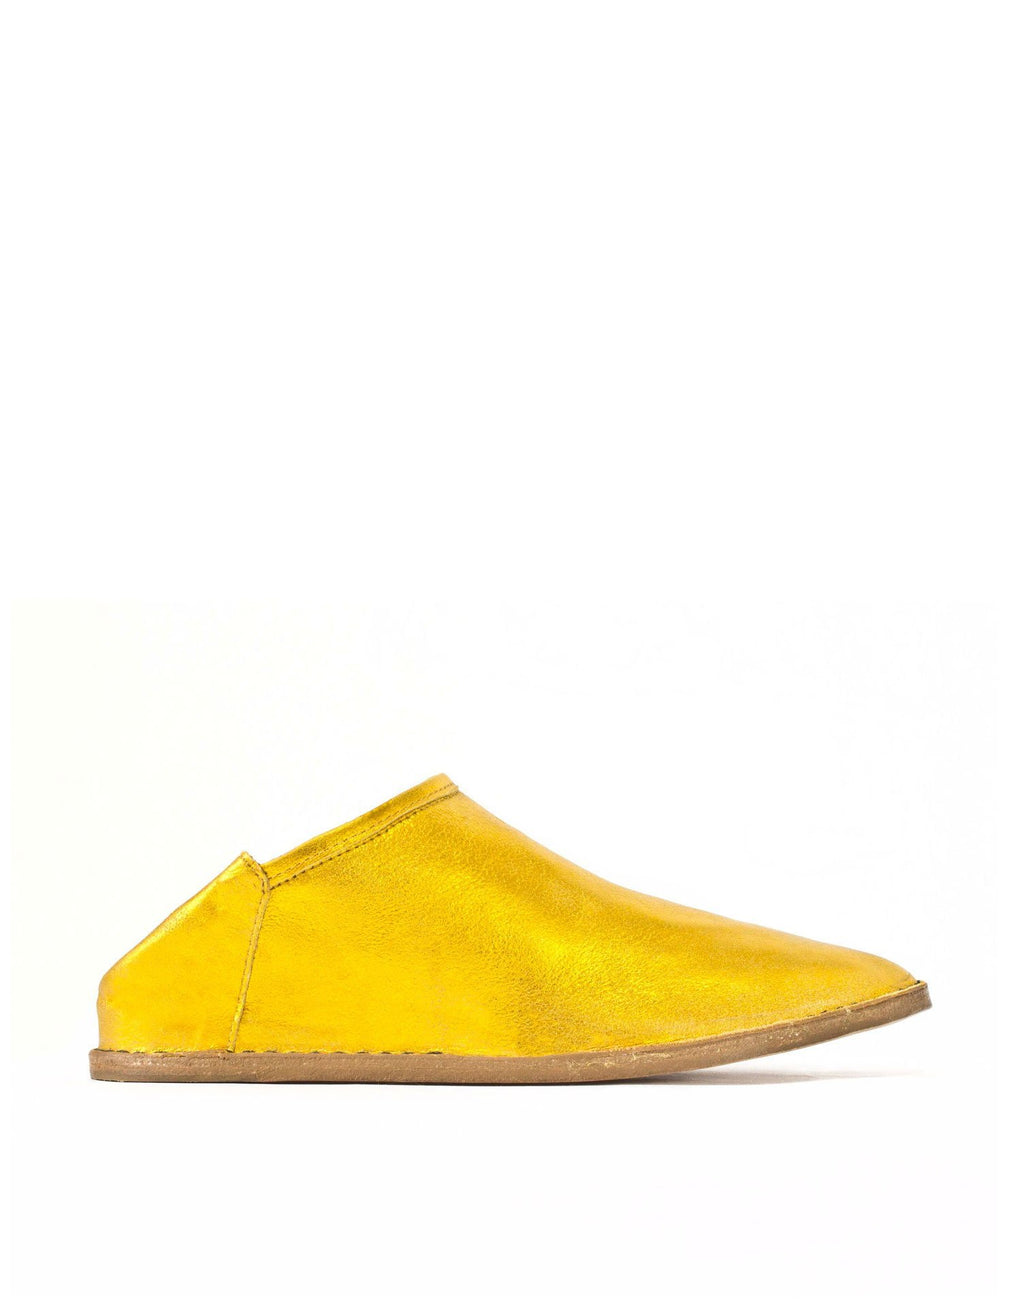 Slip on slipper shoe by designer Georgina Goodman in a vibrant metallic yellow suede, this is an unworn selling sample sold at a discounted price, effortless style at any age,